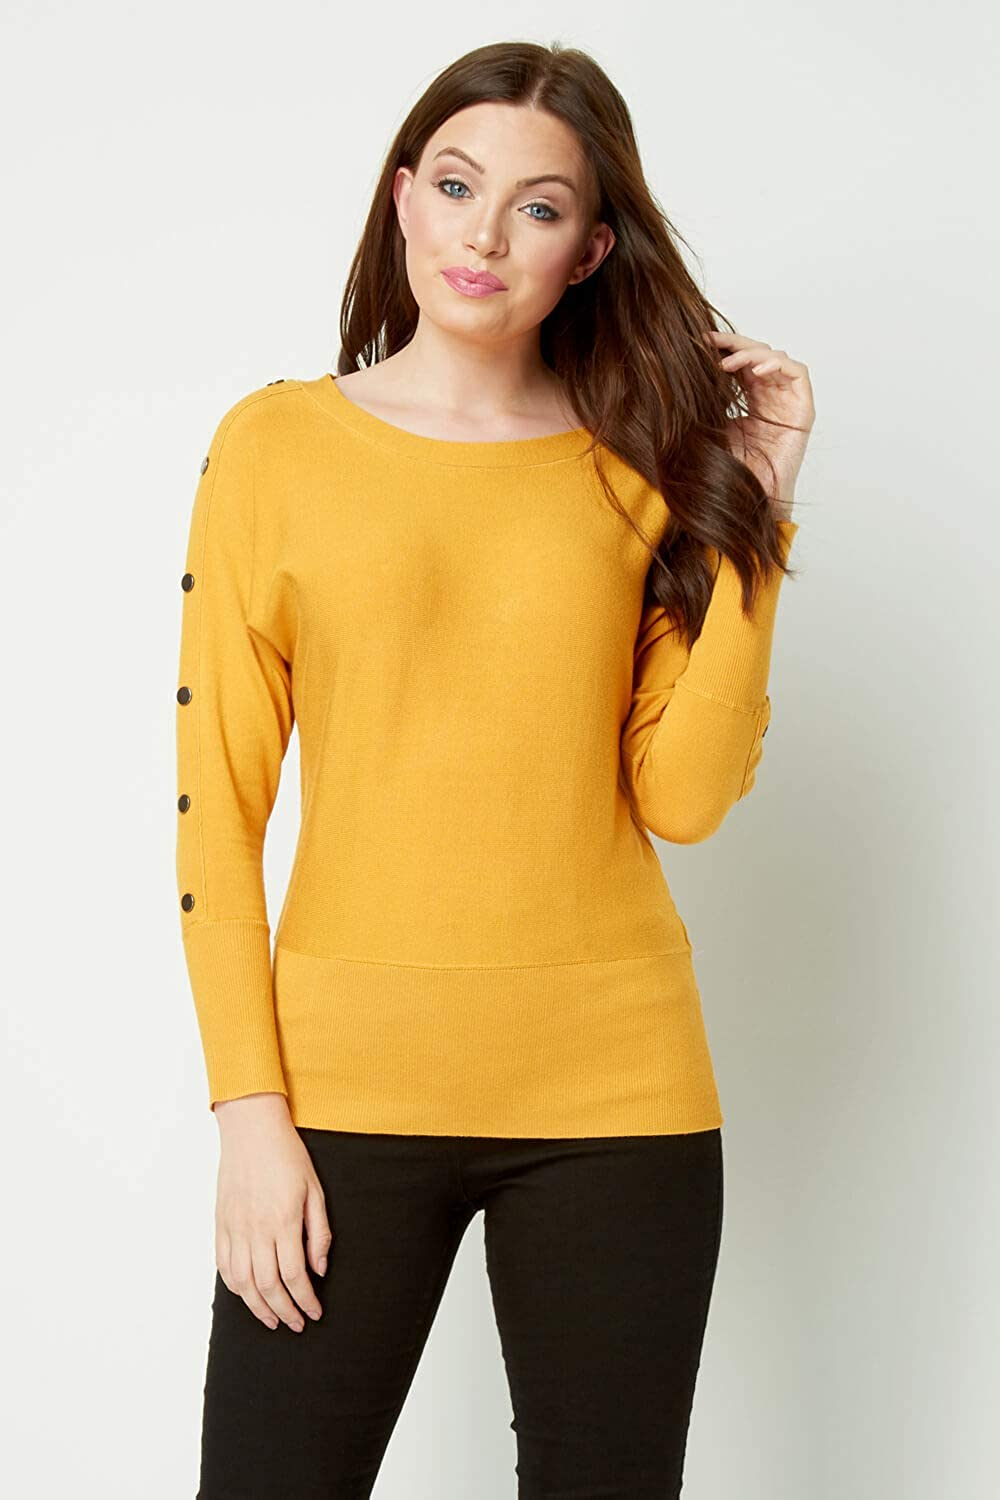 Roman Originals Women Stud Detail Jumper Tops Ladies Casual Ribbed Long Sleeve Pullover Sweater Knitwear Outerwear Top Jumpers